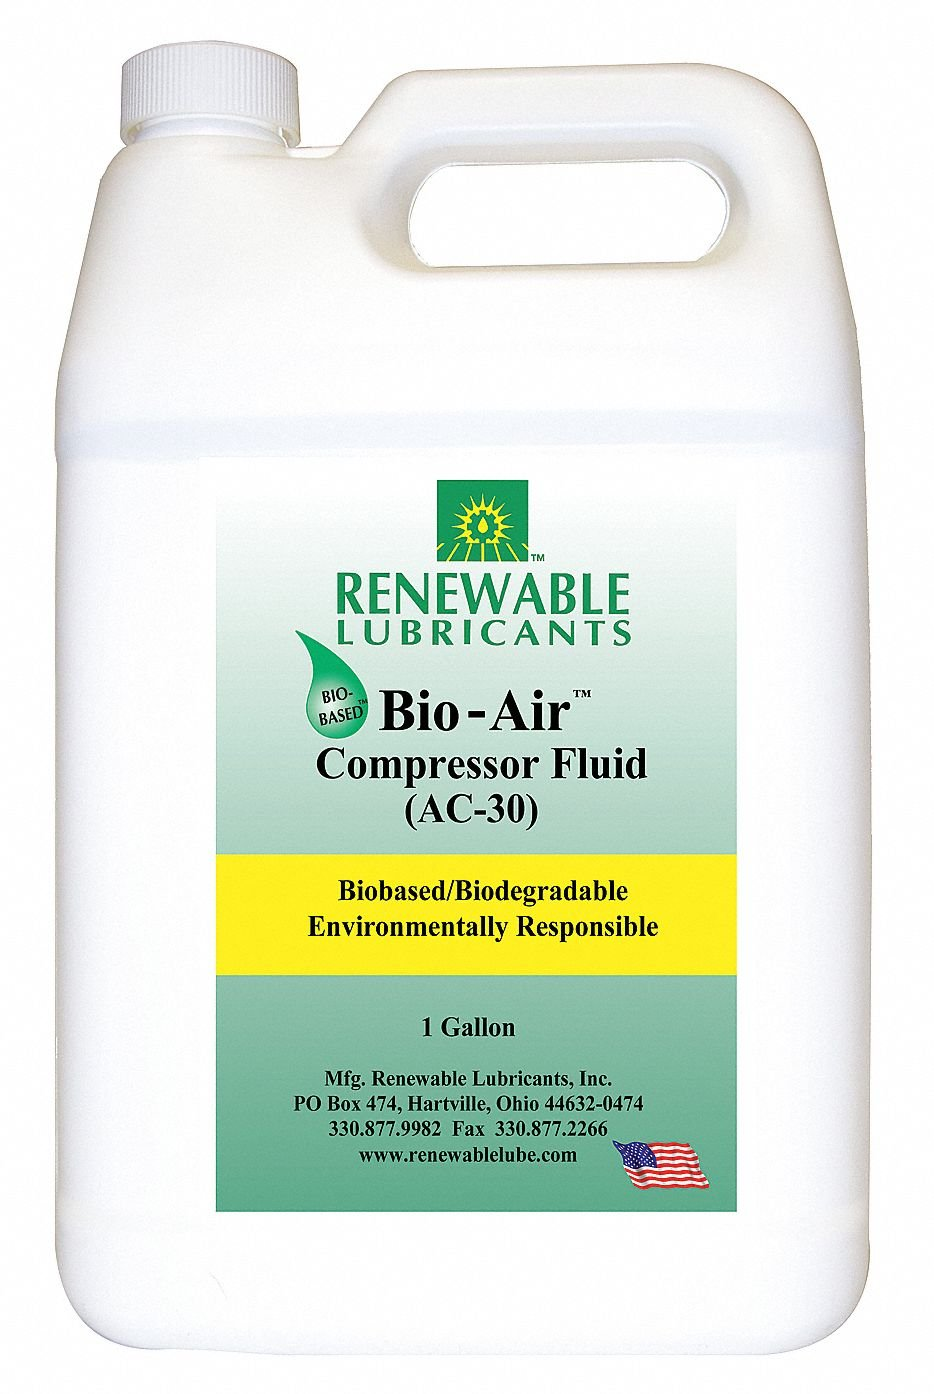 1 gal. Can of Compressor Oil by Renewable Lubricants